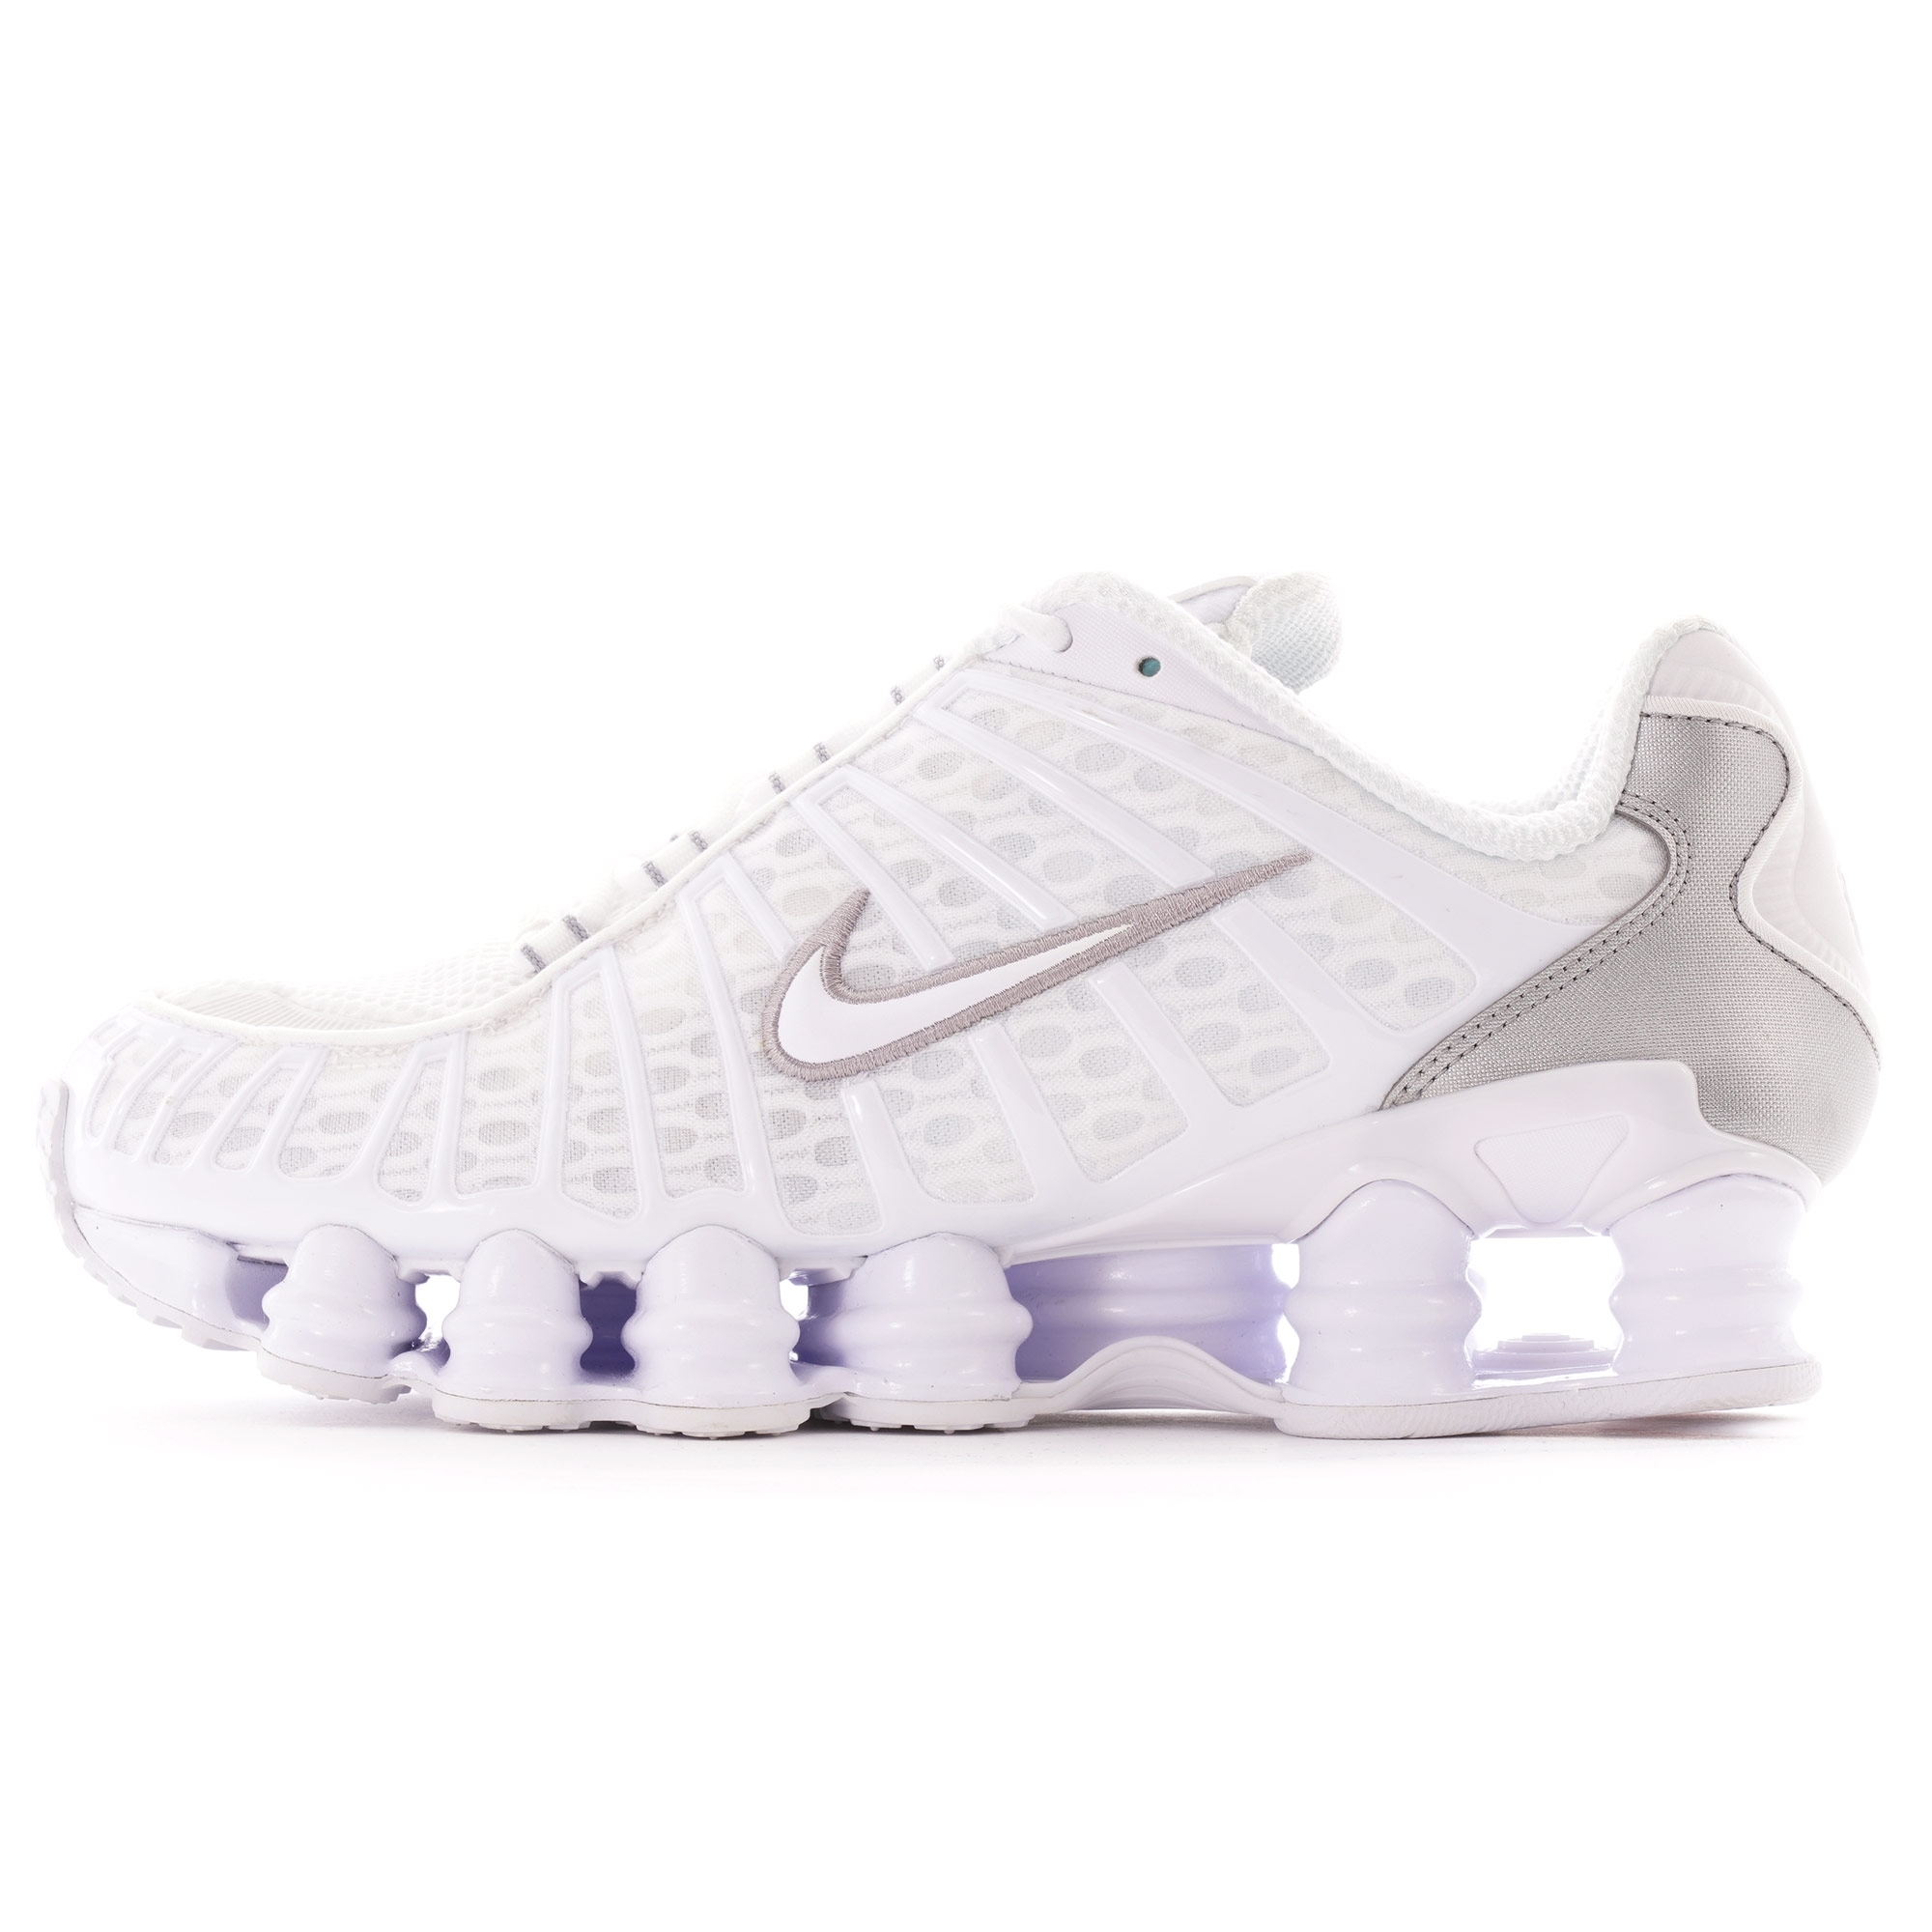 Nike Shox TL   White and Silver